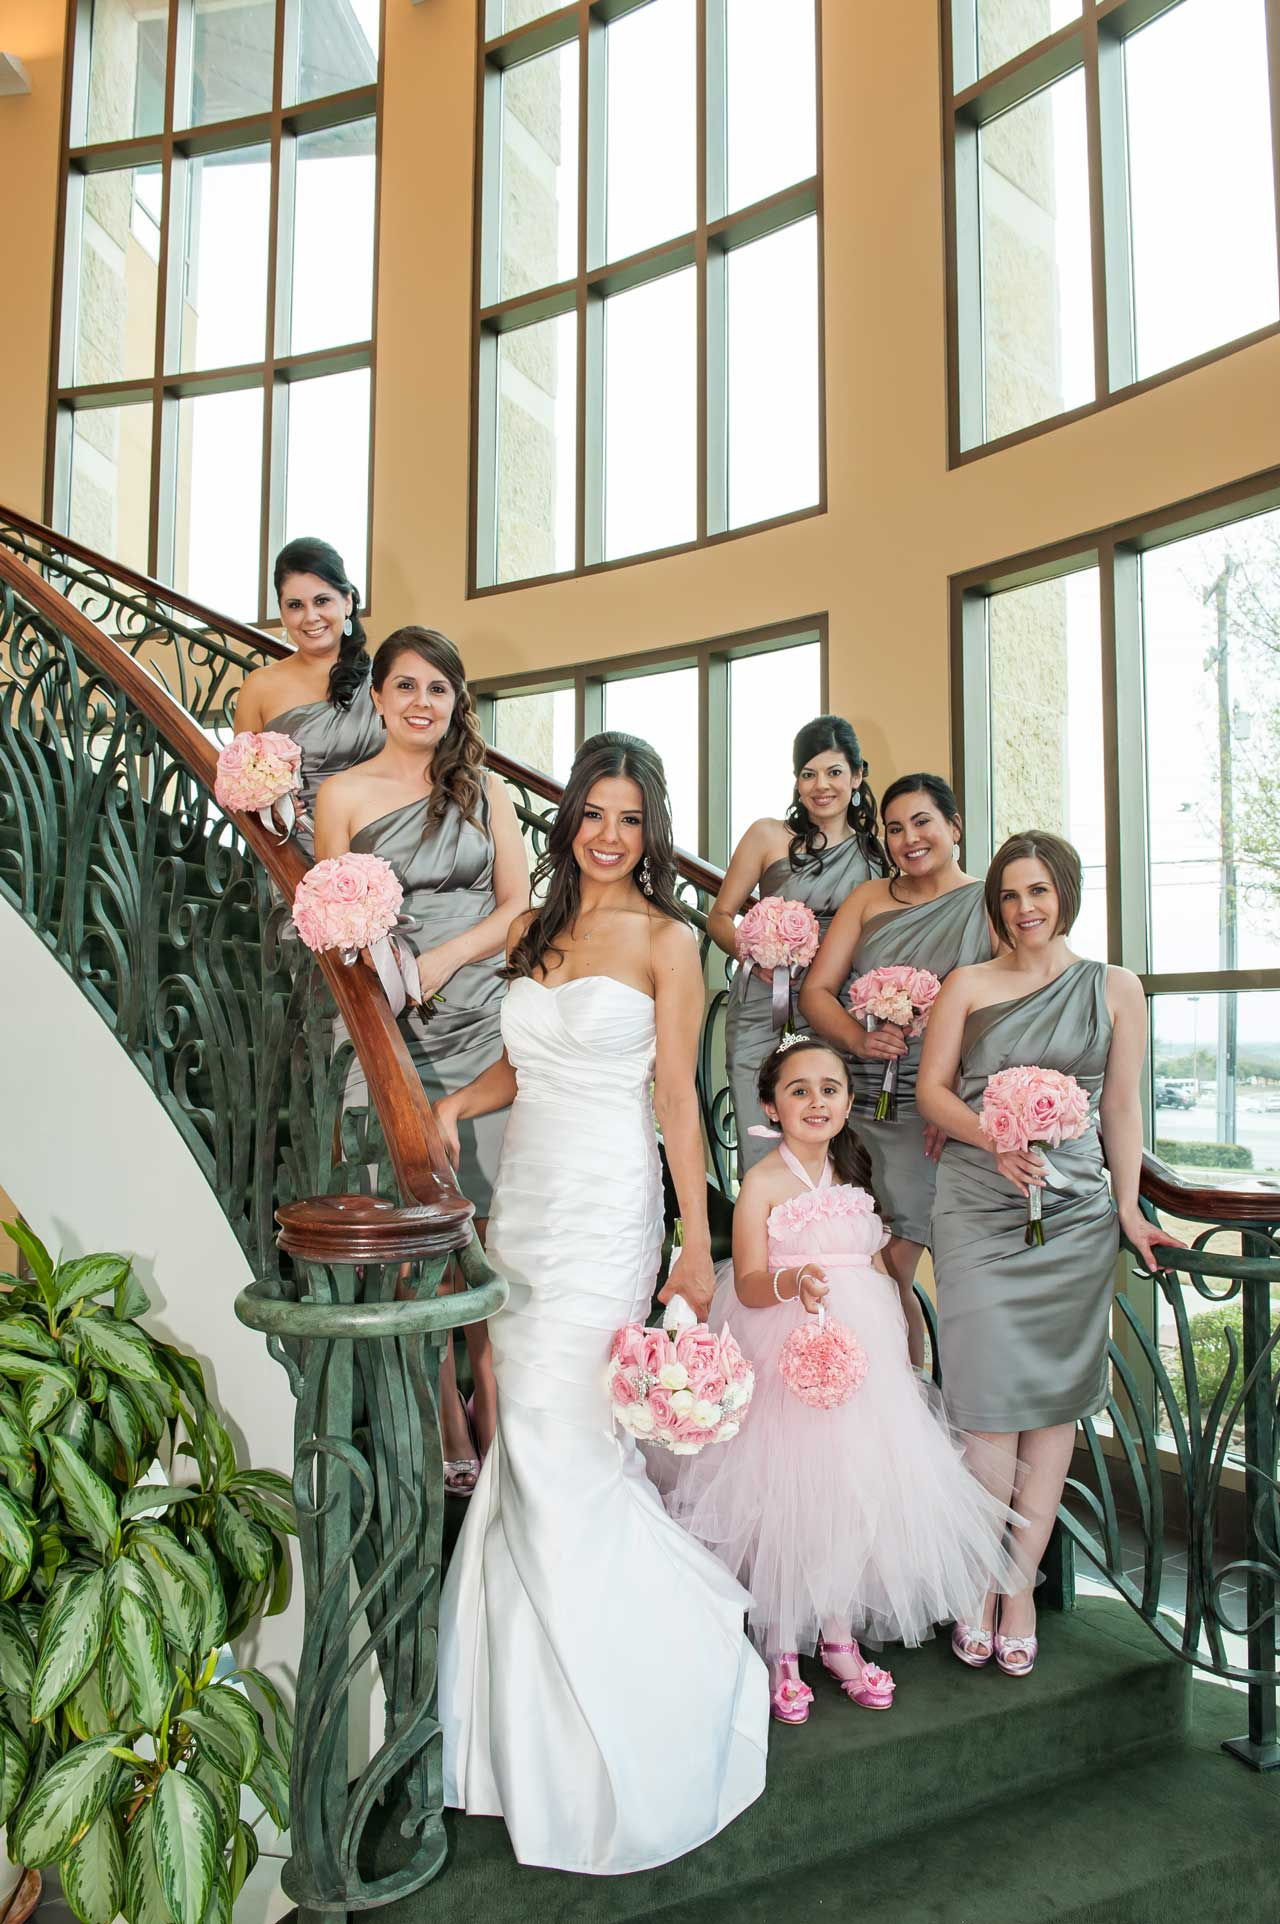 San Antonio Wedding Venue Bridal Stairs